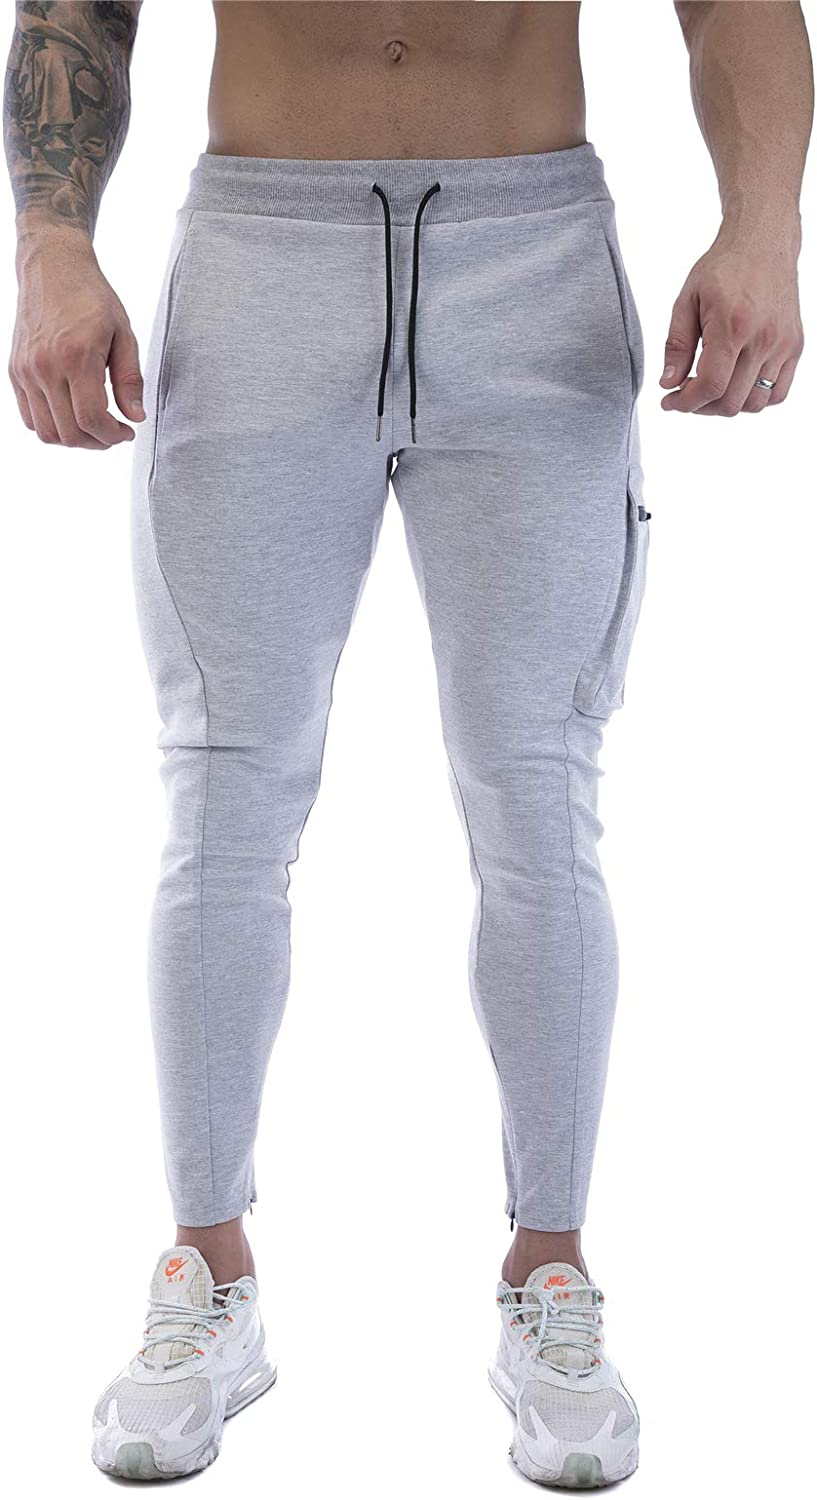 FIRSTGYM Mens Joggers Sweatpants Slim Fit Running Performance Gym Pants